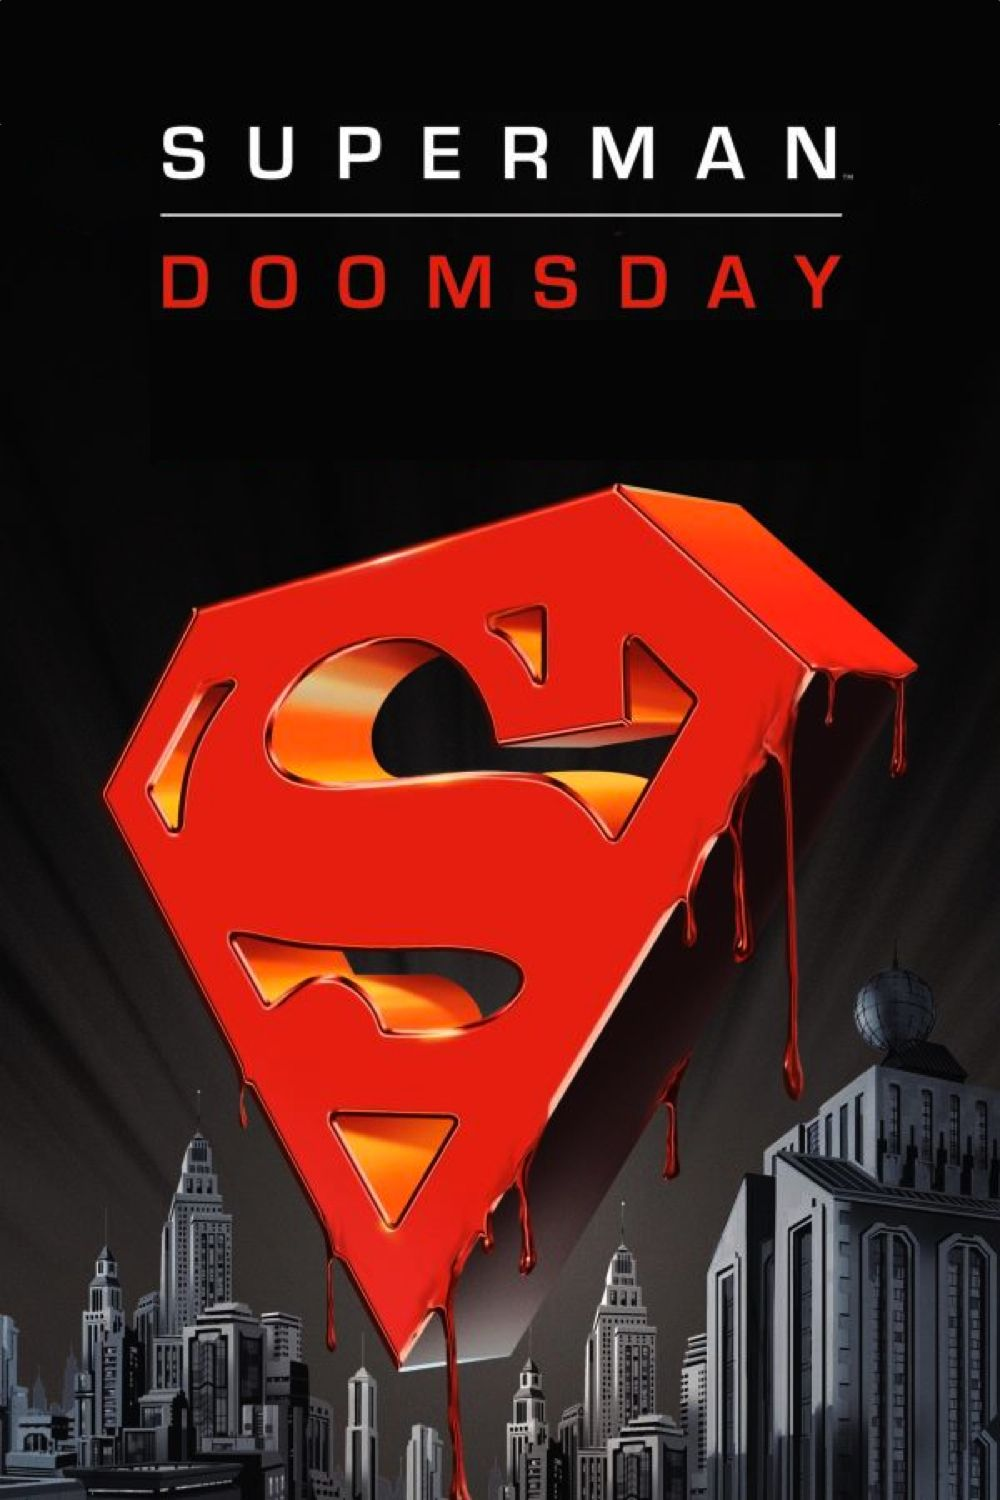 click image to watch Superman/Doomsday (2007)